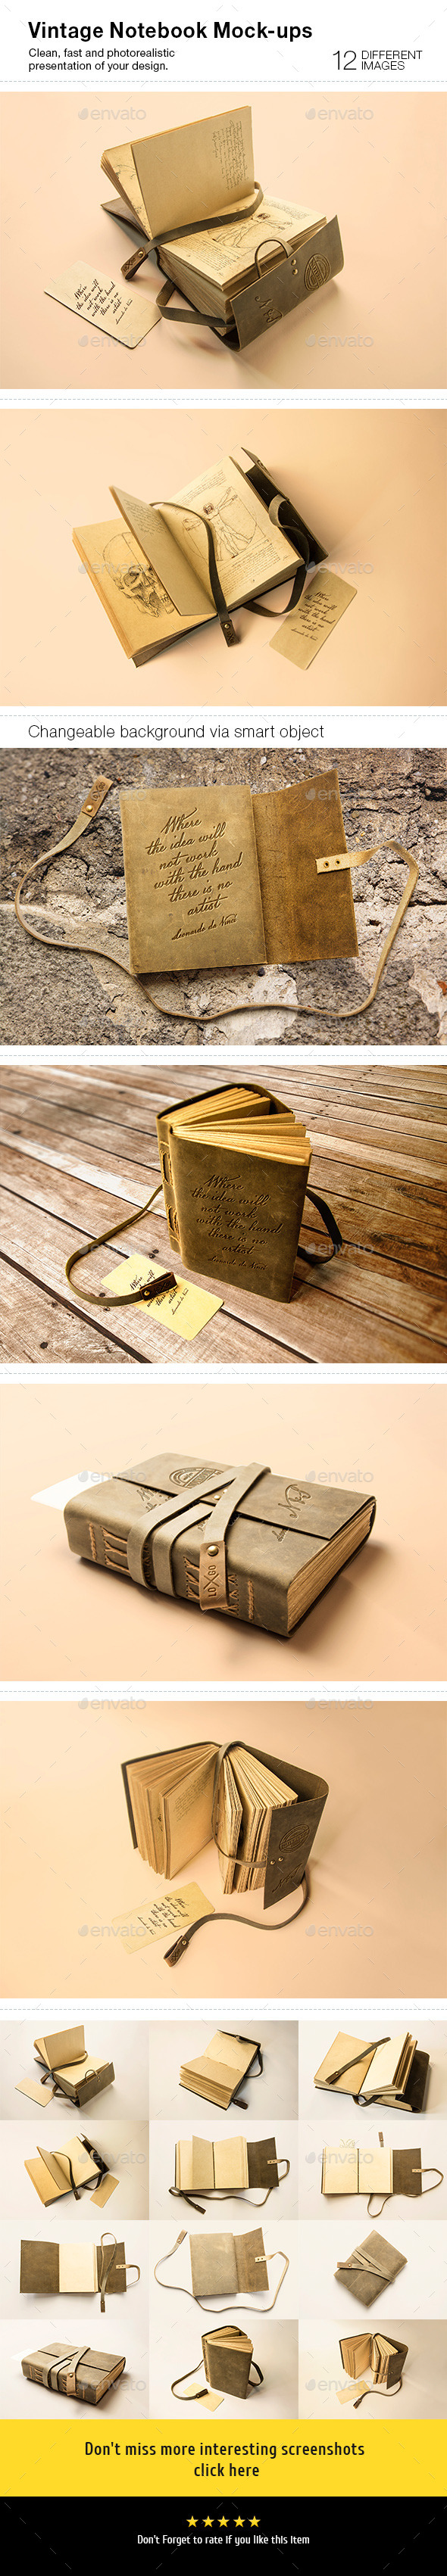 12 Vintage Notebook Mock-Ups - Stationery Print